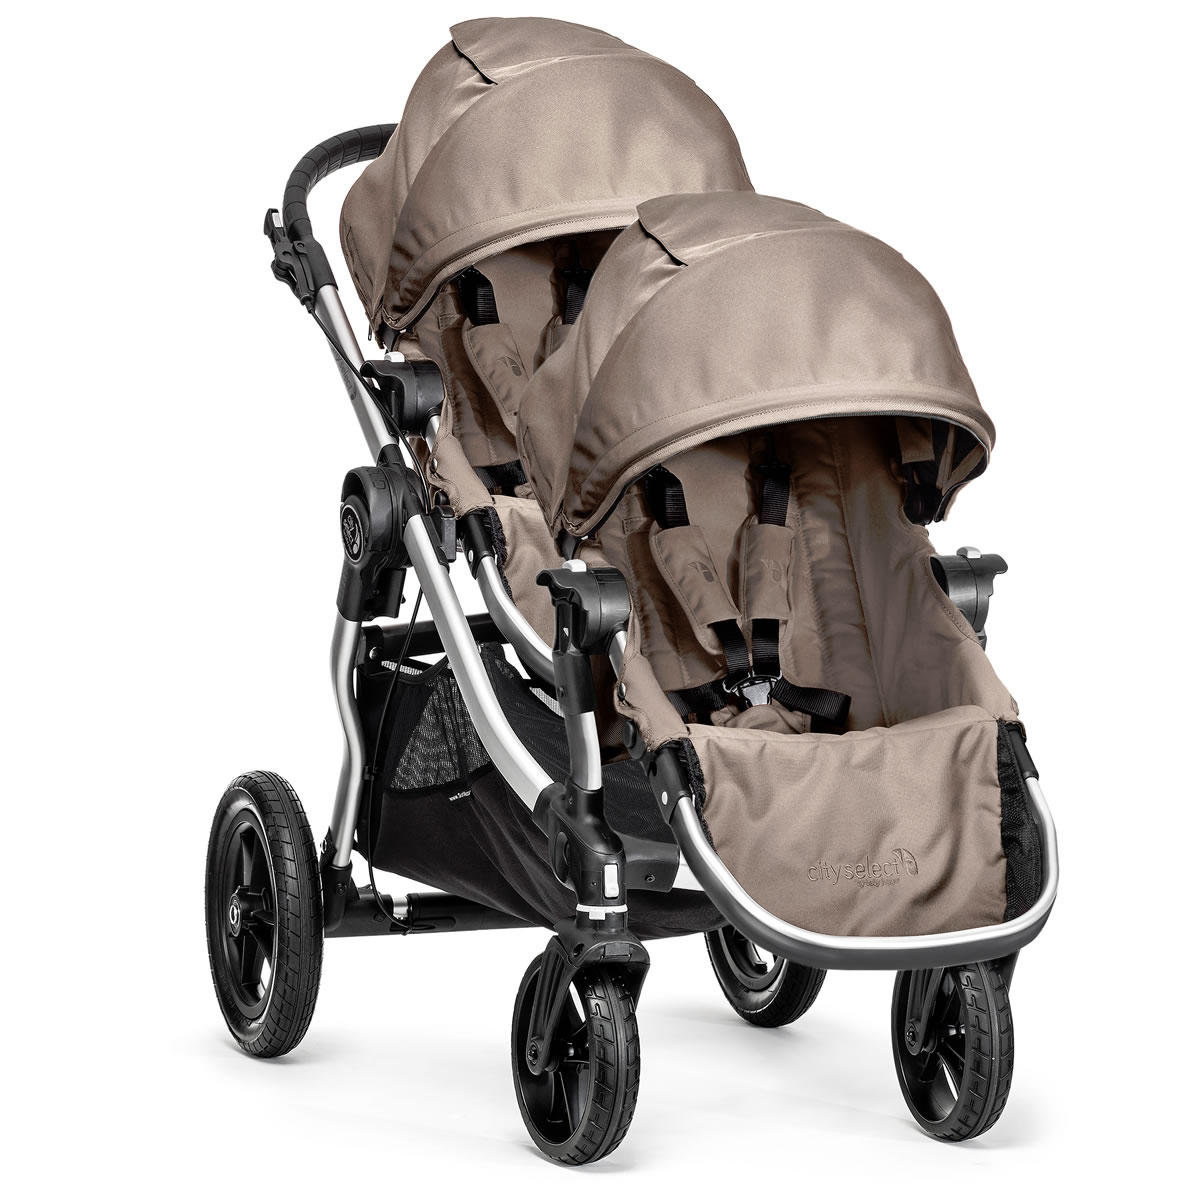 Baby Jogger City Select Double Stroller - Quartz